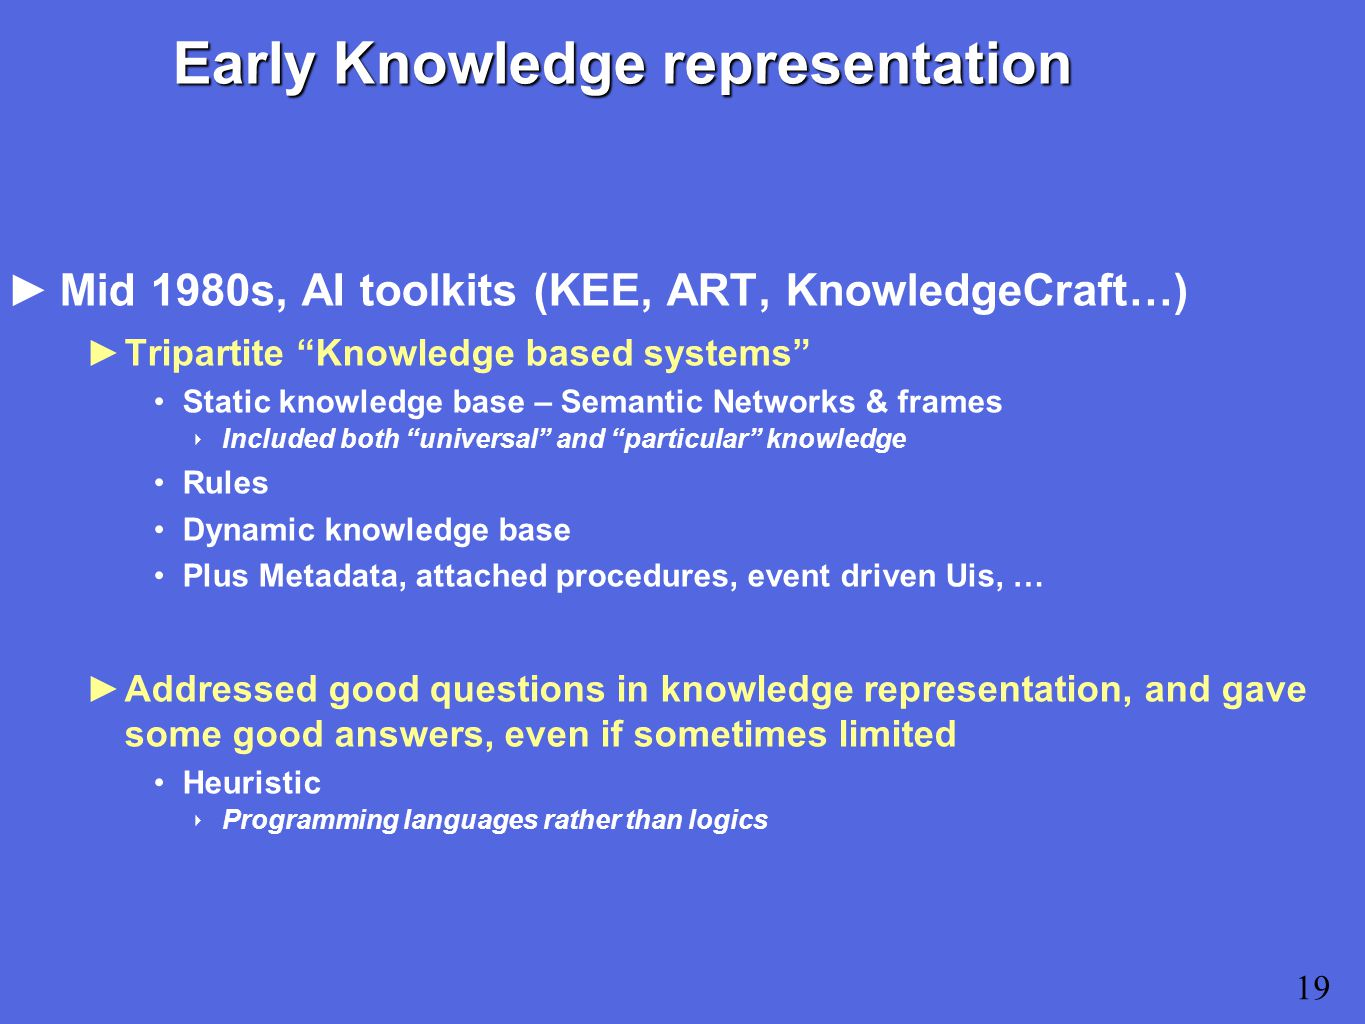 Early Knowledge representation ►Mid 1980s, AI toolkits (KEE, ART, KnowledgeCraft…) ►Tripartite Knowledge based systems Static knowledge base – Semantic Networks & frames ‣ Included both universal and particular knowledge Rules Dynamic knowledge base Plus Metadata, attached procedures, event driven Uis, … ►Addressed good questions in knowledge representation, and gave some good answers, even if sometimes limited Heuristic ‣ Programming languages rather than logics 19